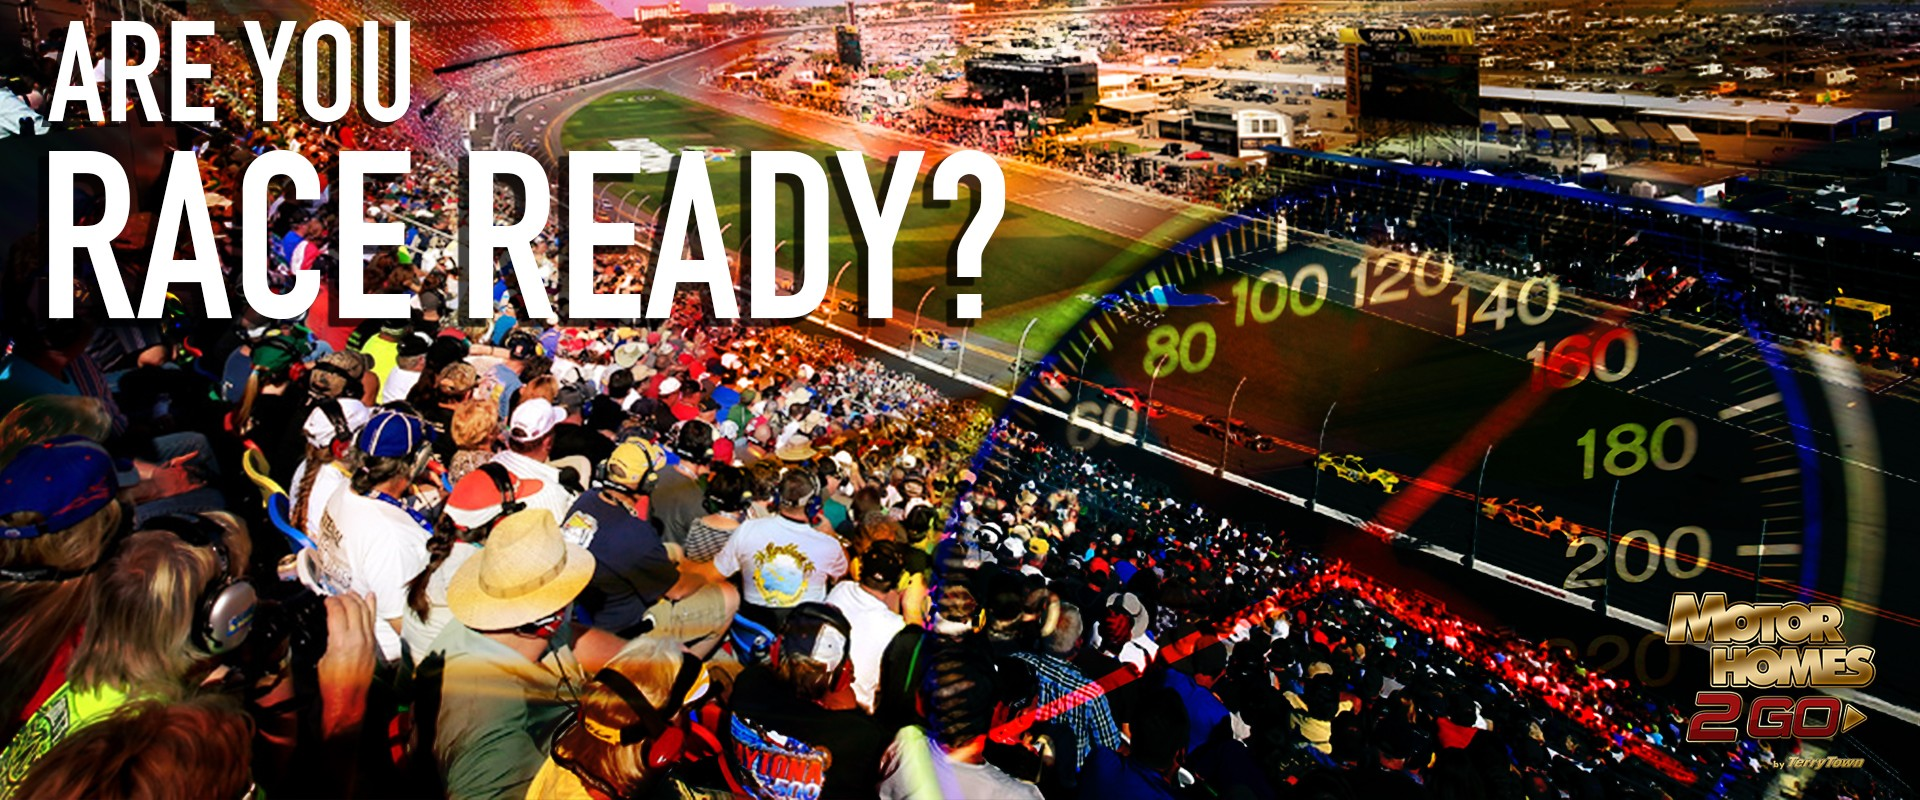 Are you race ready? The Daytona 500 is fast-approaching!